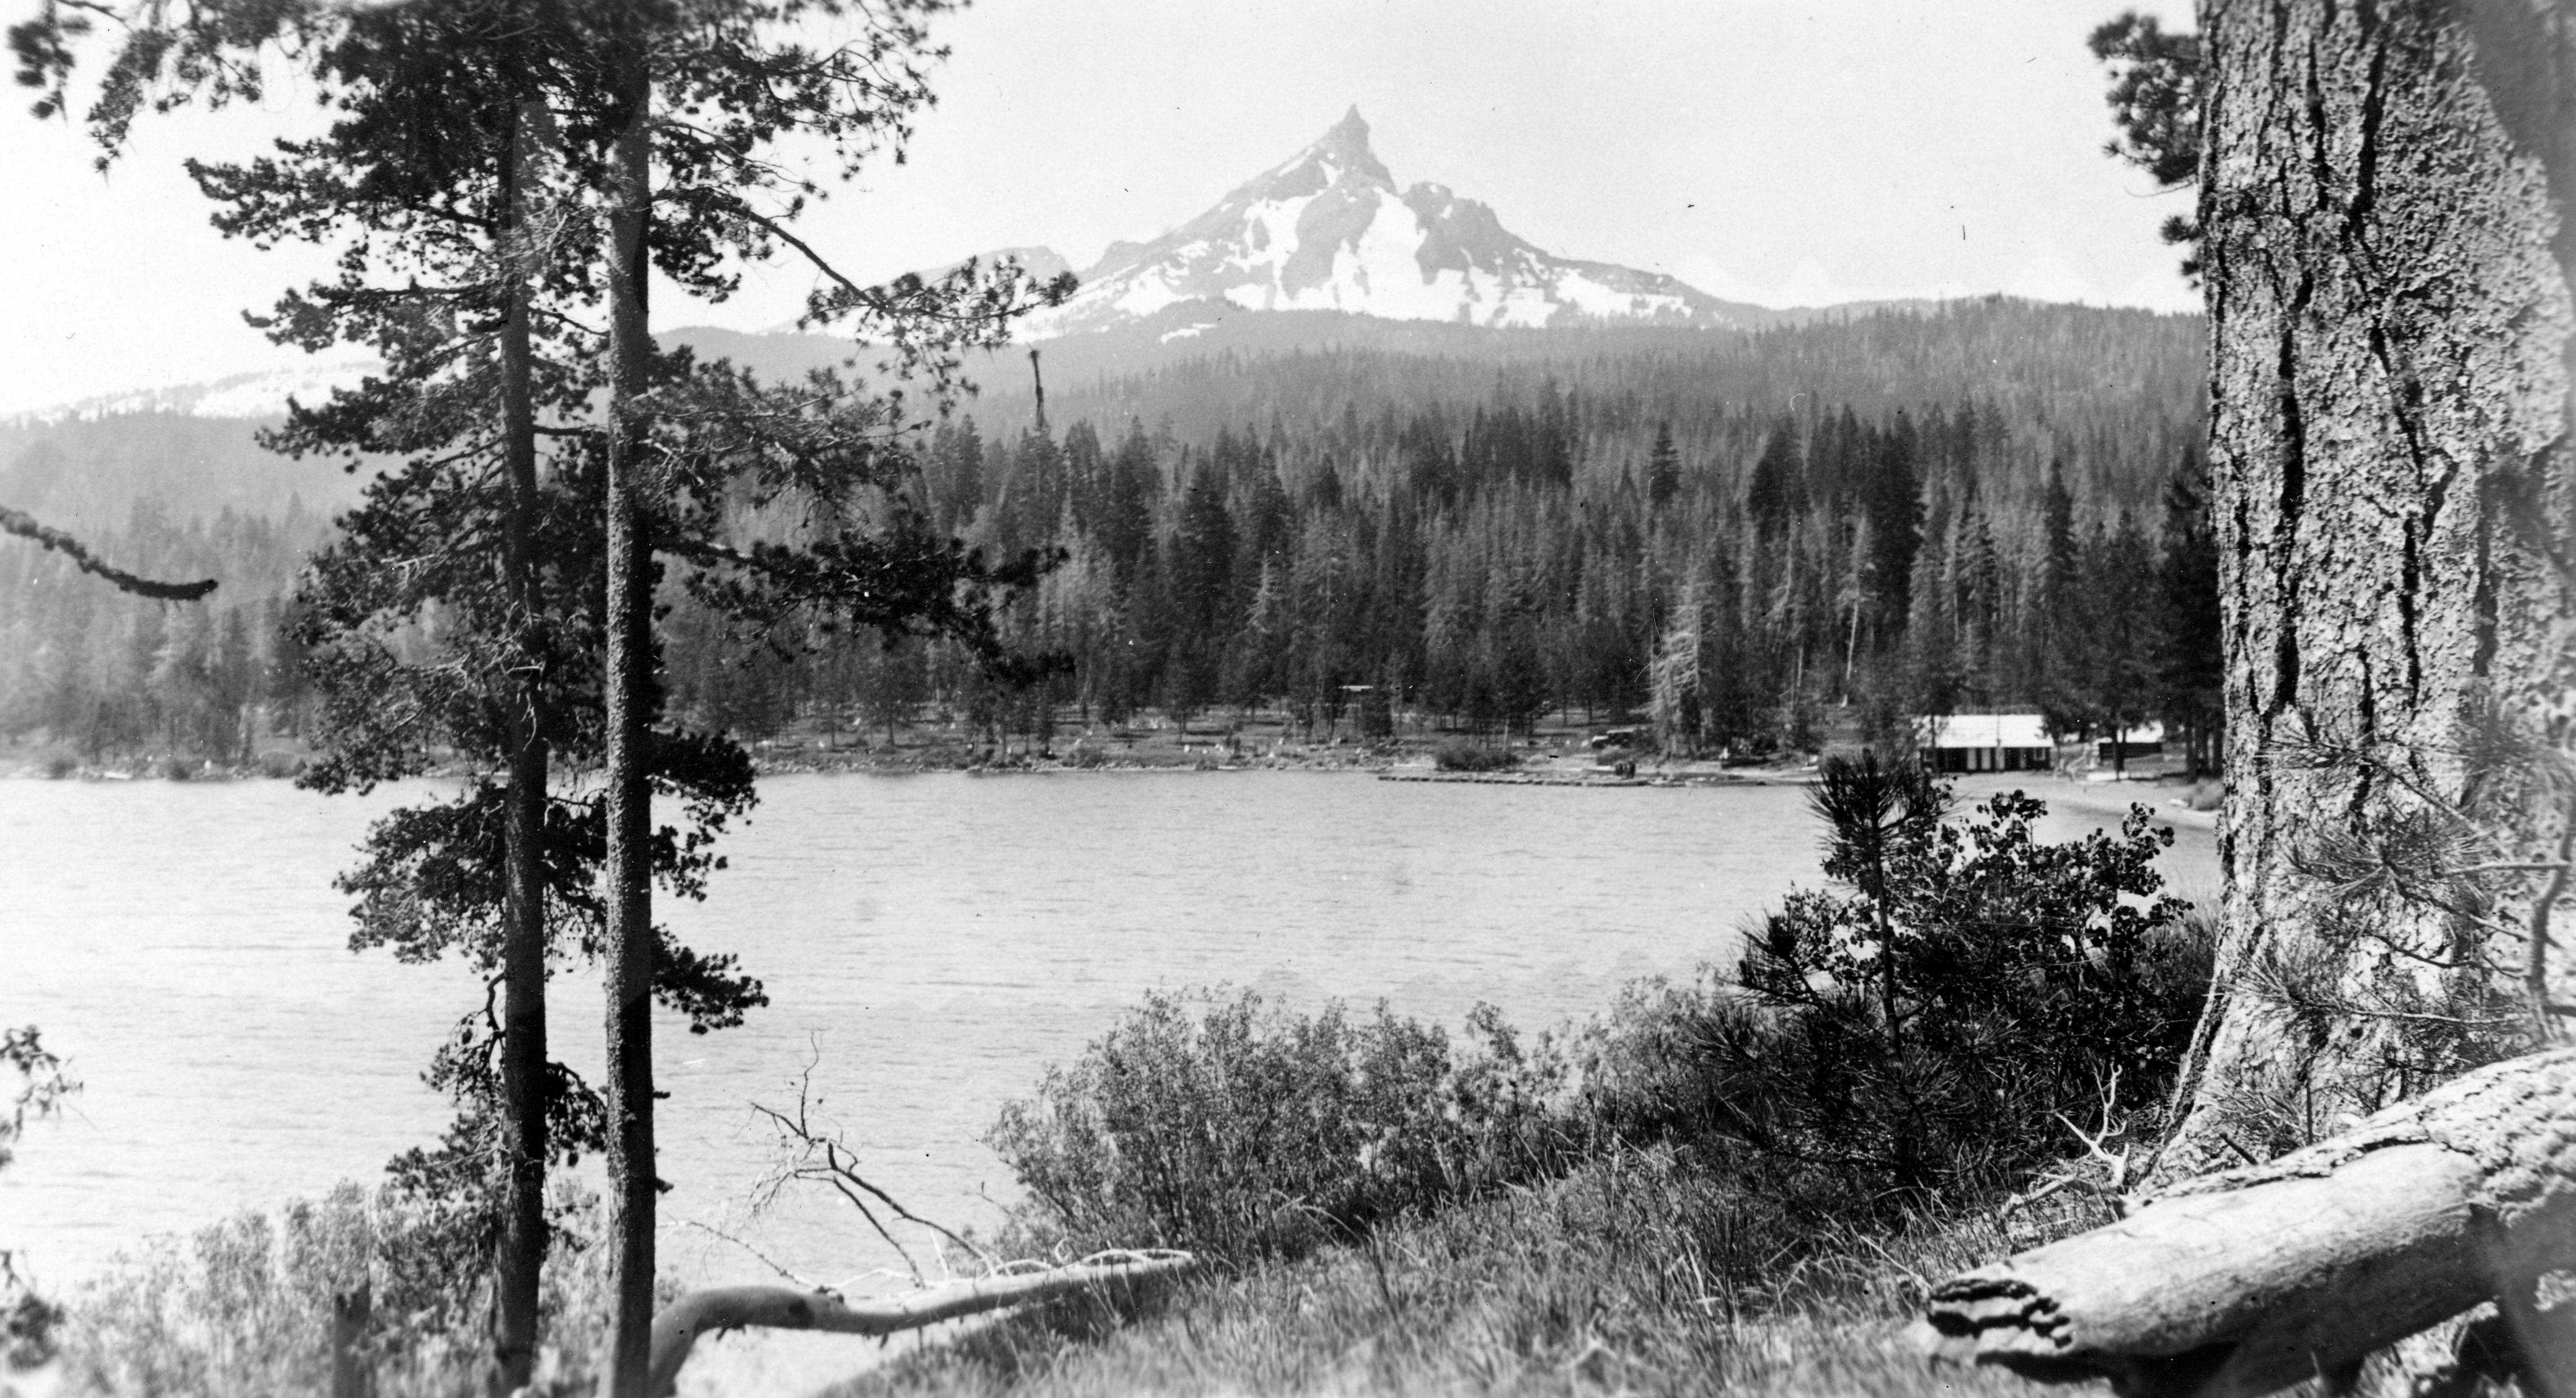 Diamond Lake with Mt. Thielsen in the distance